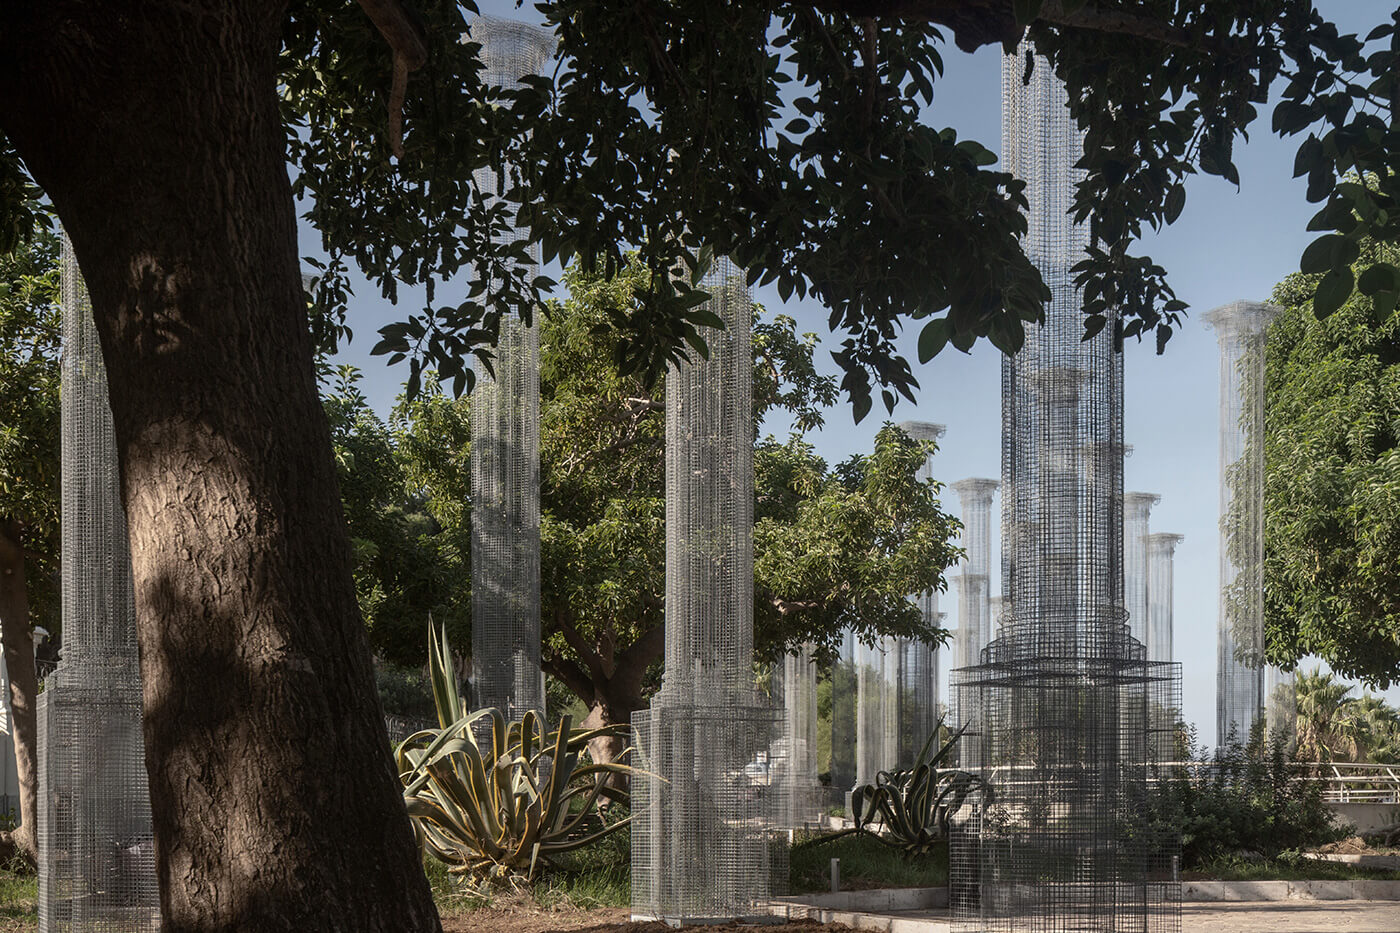 The installation highlights harmonies and contrasts between the pillars and the trees | Opera | Edoardo Tresoldi | STIRworld